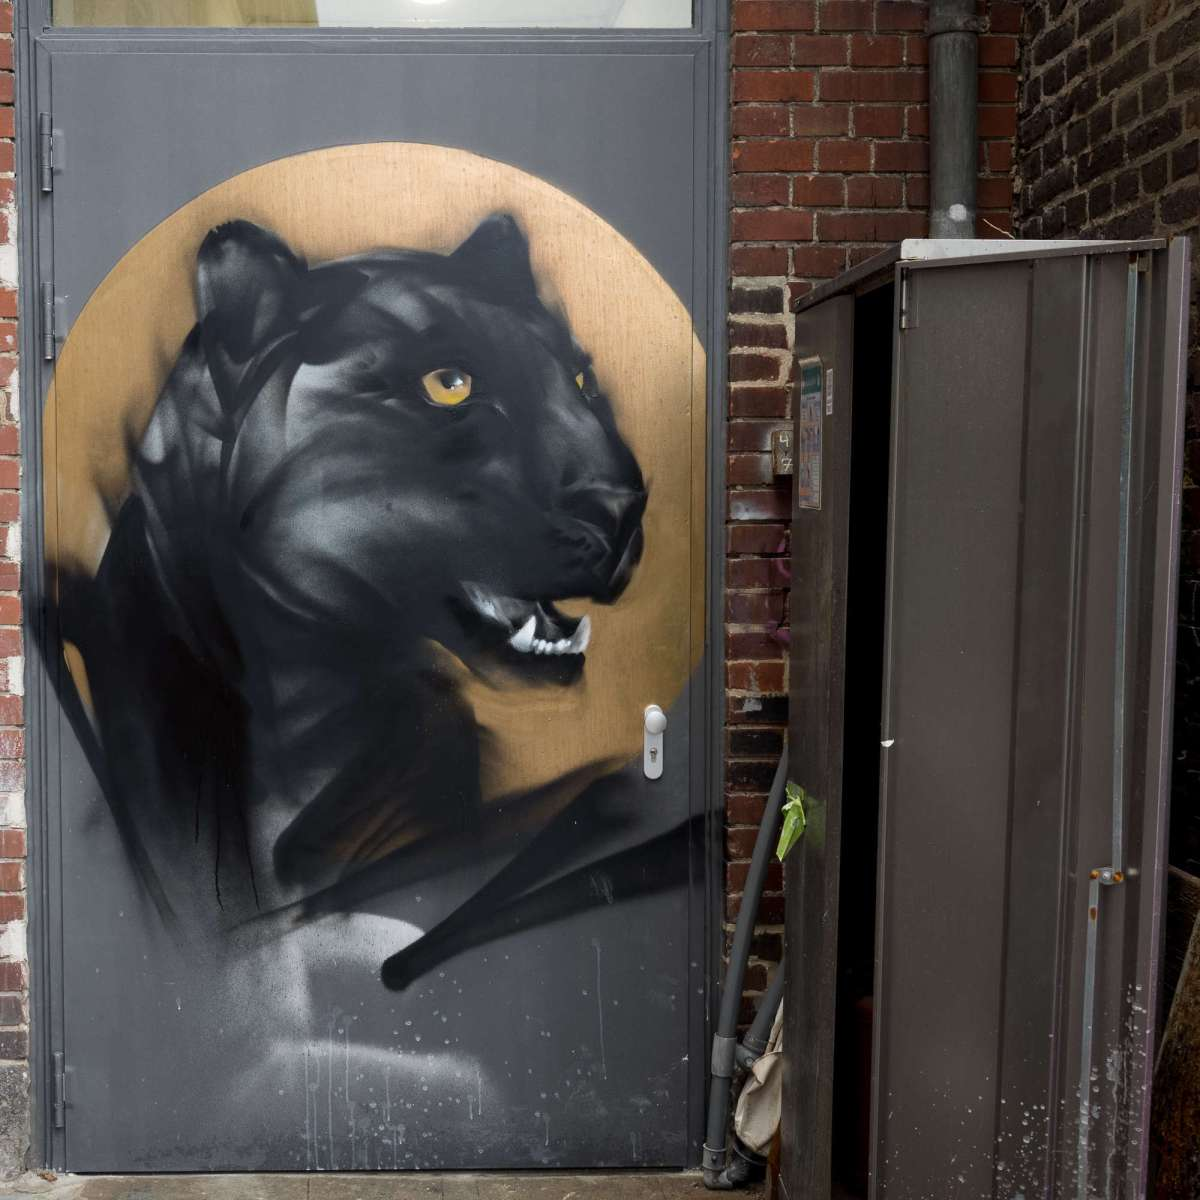 Graffiti in Frankfurt - Black Panther an der Naxoshalle